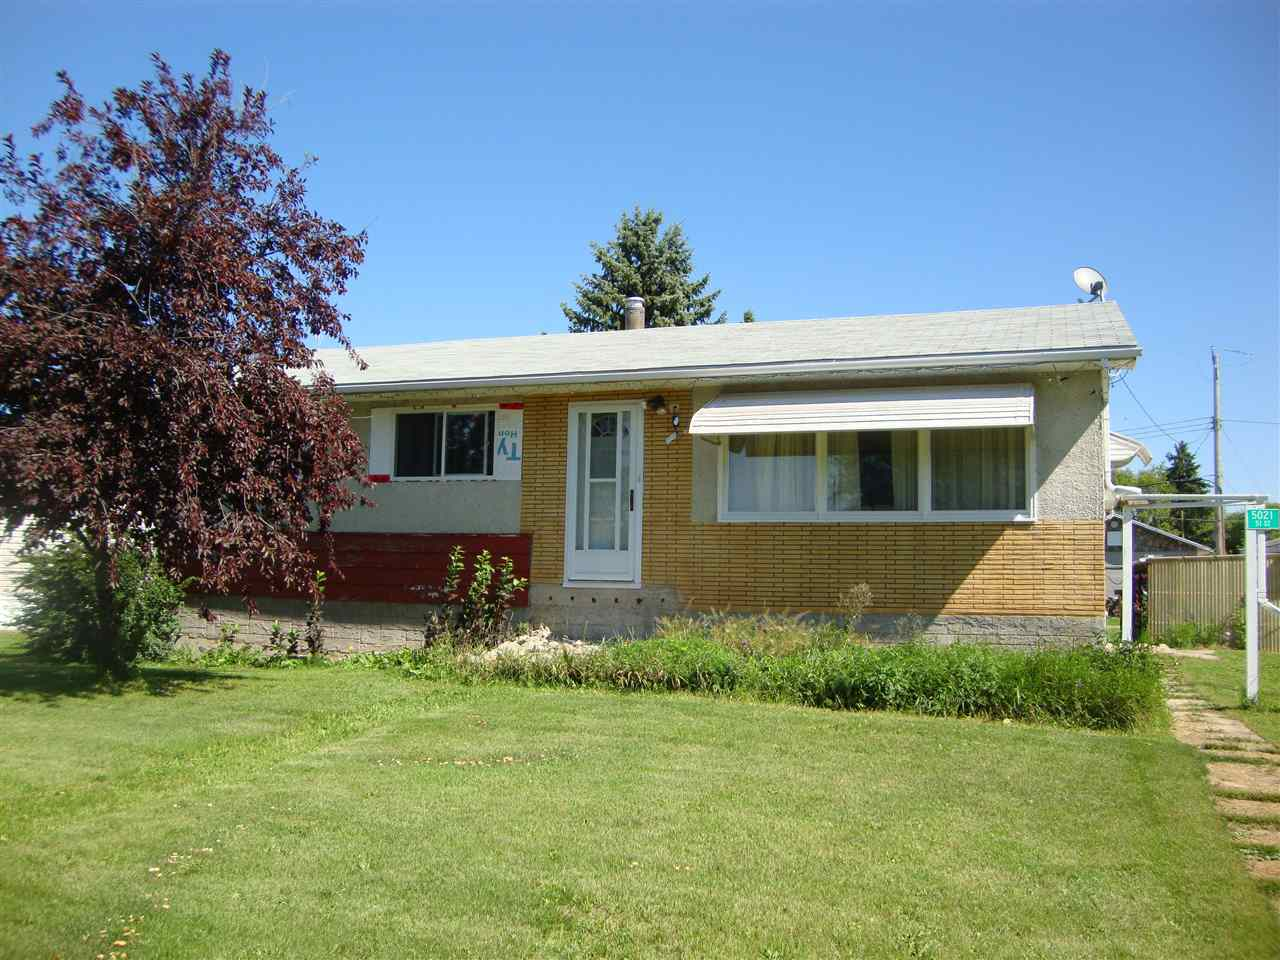 For Sale: 5021 51 Street, Newbrook, AB | 3 Bed, 1 Bath House for $115,000. See 12 photos!